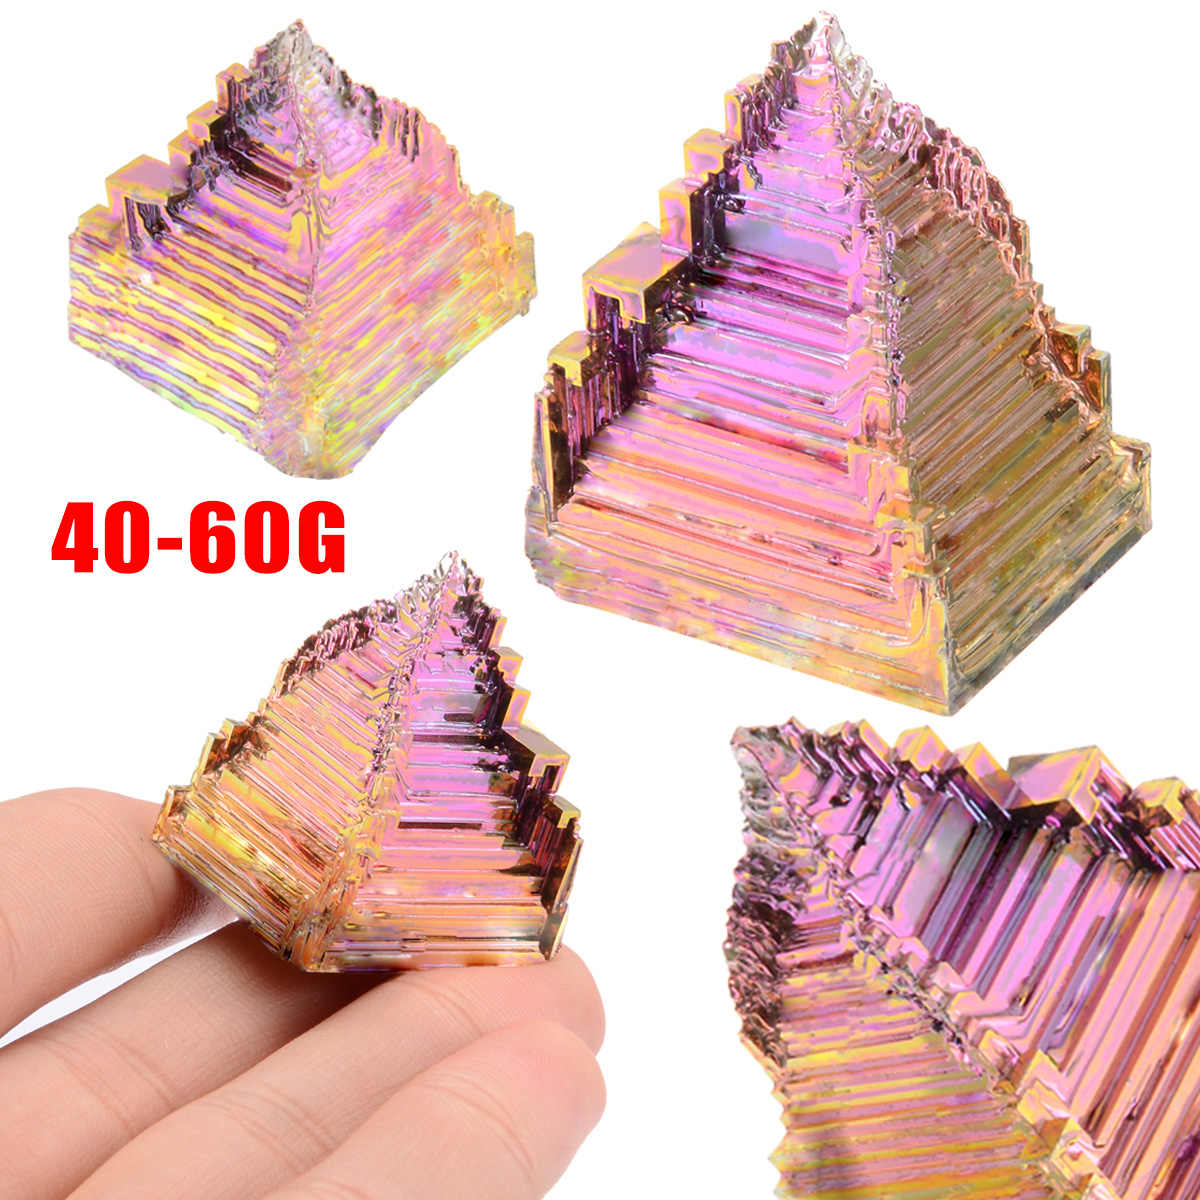 New Arrival 40-60g Colorful Bismuth Crystals High Purity Bismuth Metal Crystal Specimen For Bismuth Crystals